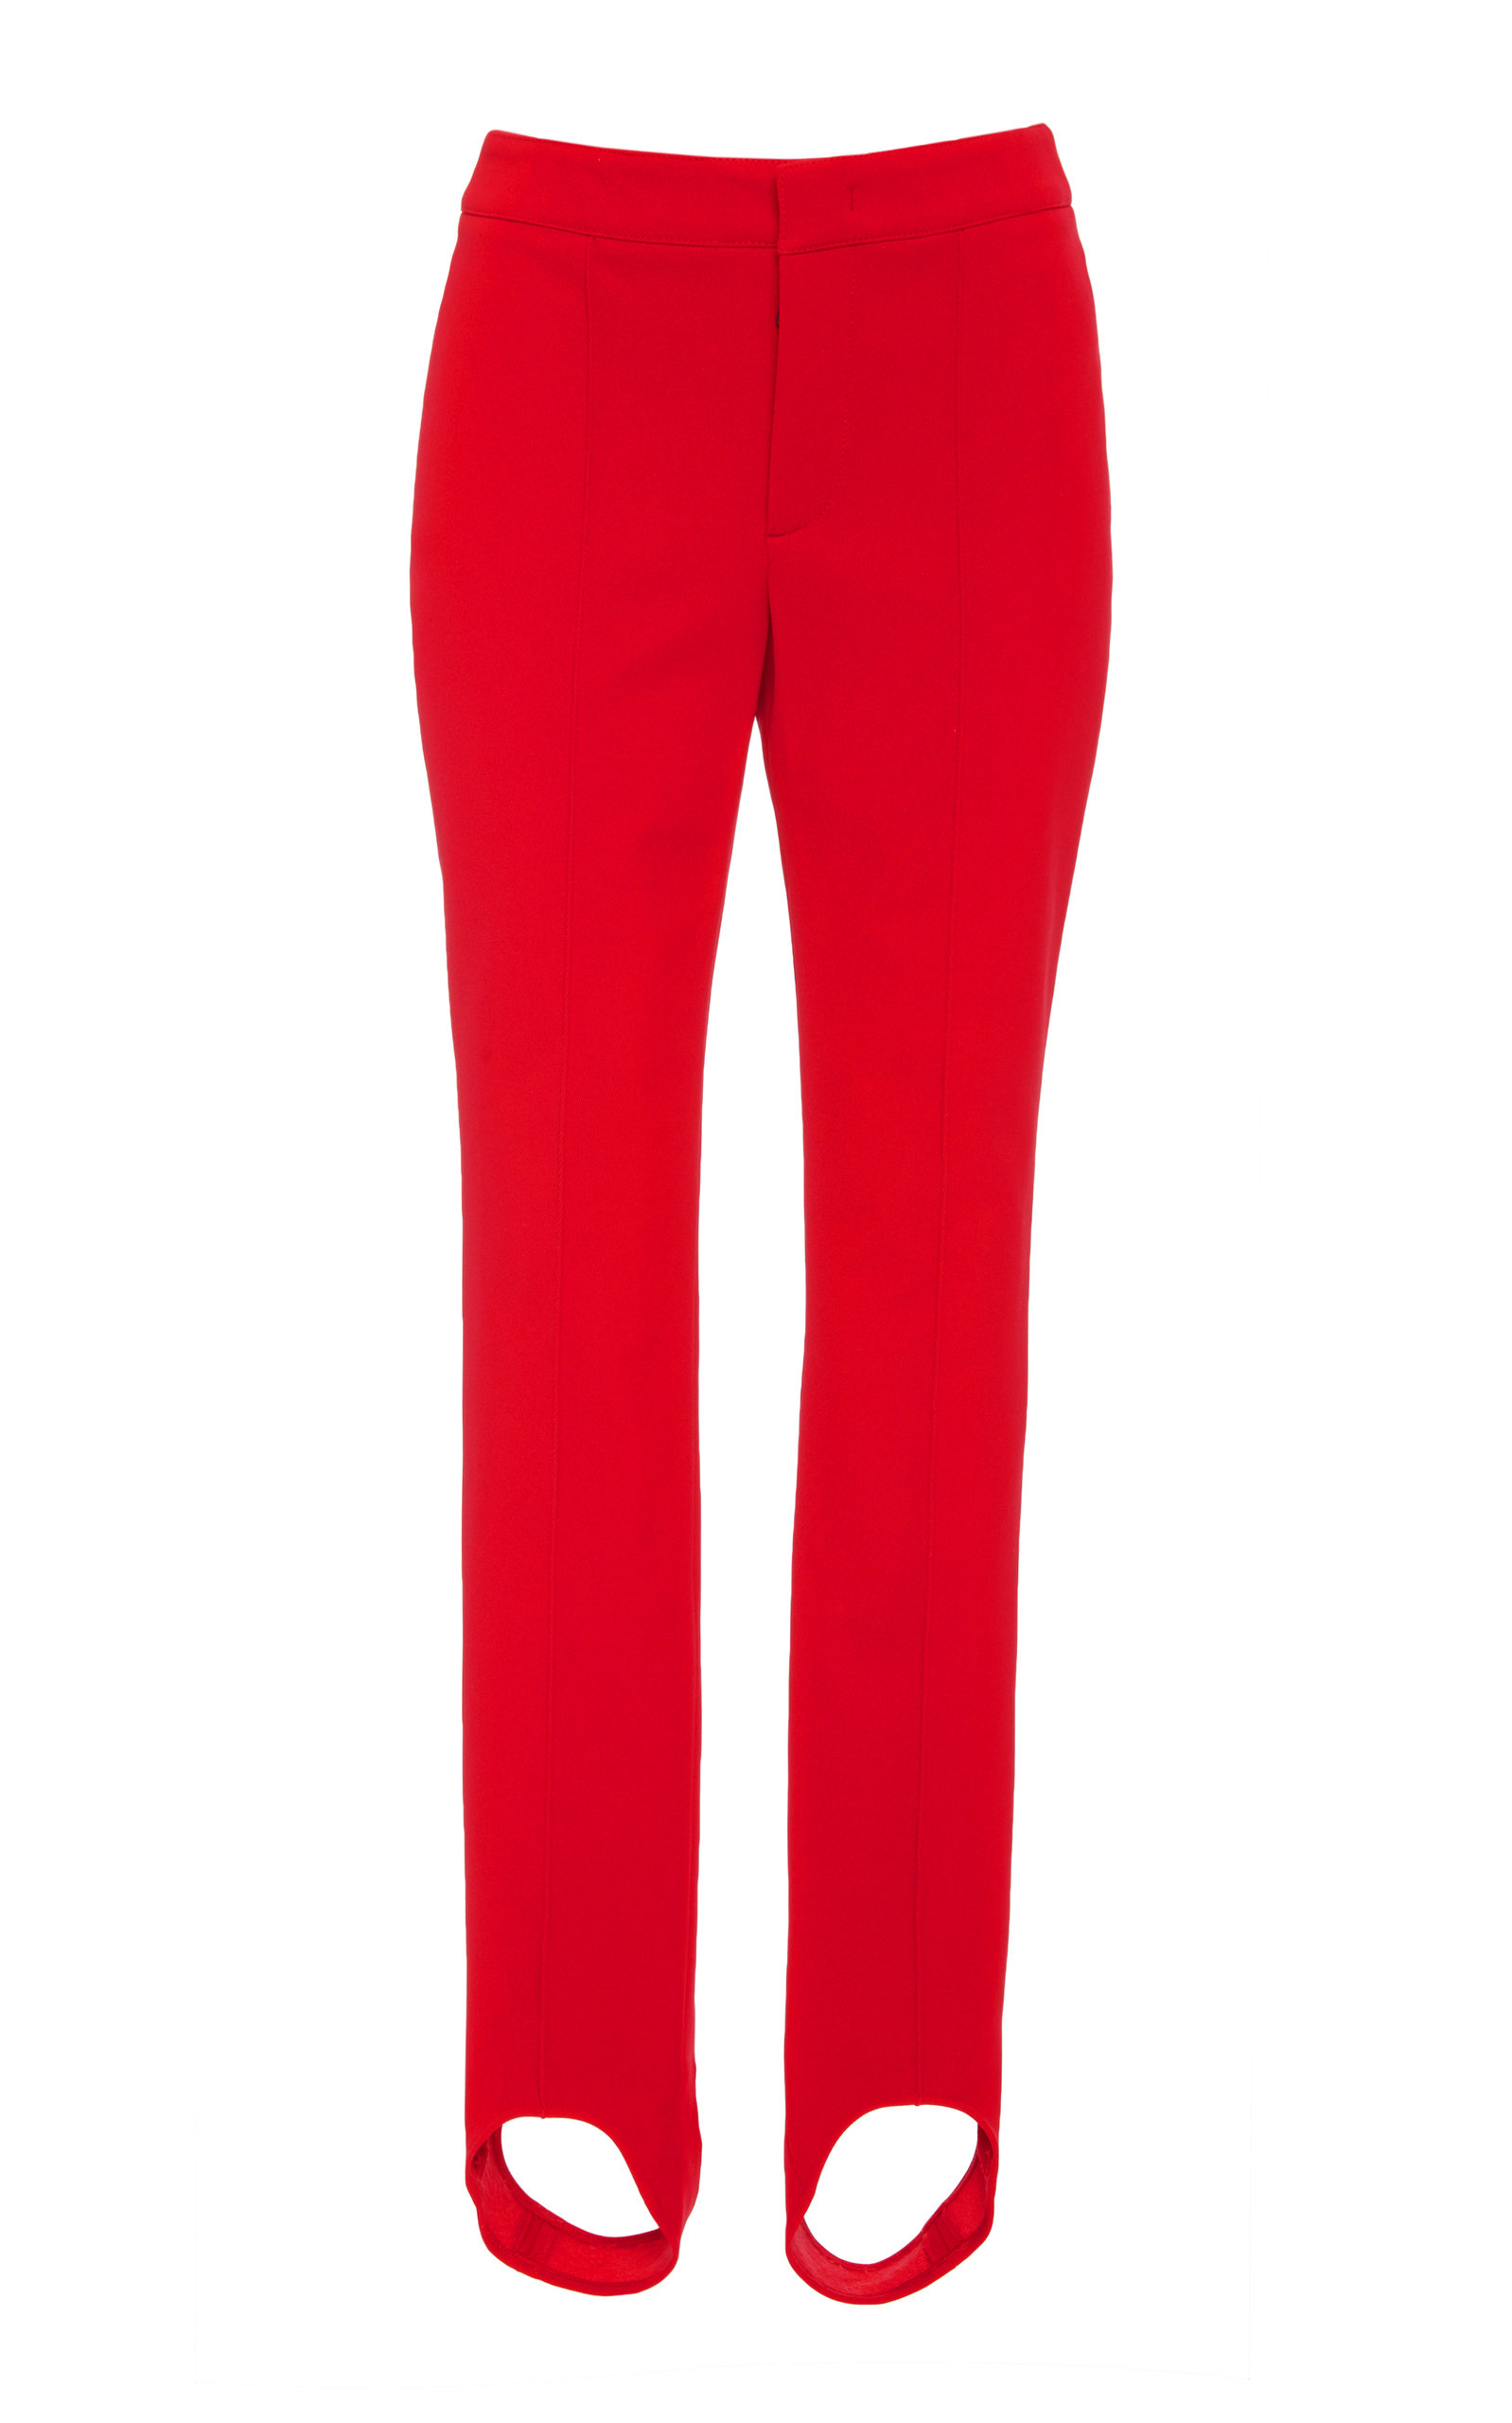 Moncler Grenoble Pants Mid-Rise Stirrup Stretch-Twill Leggings